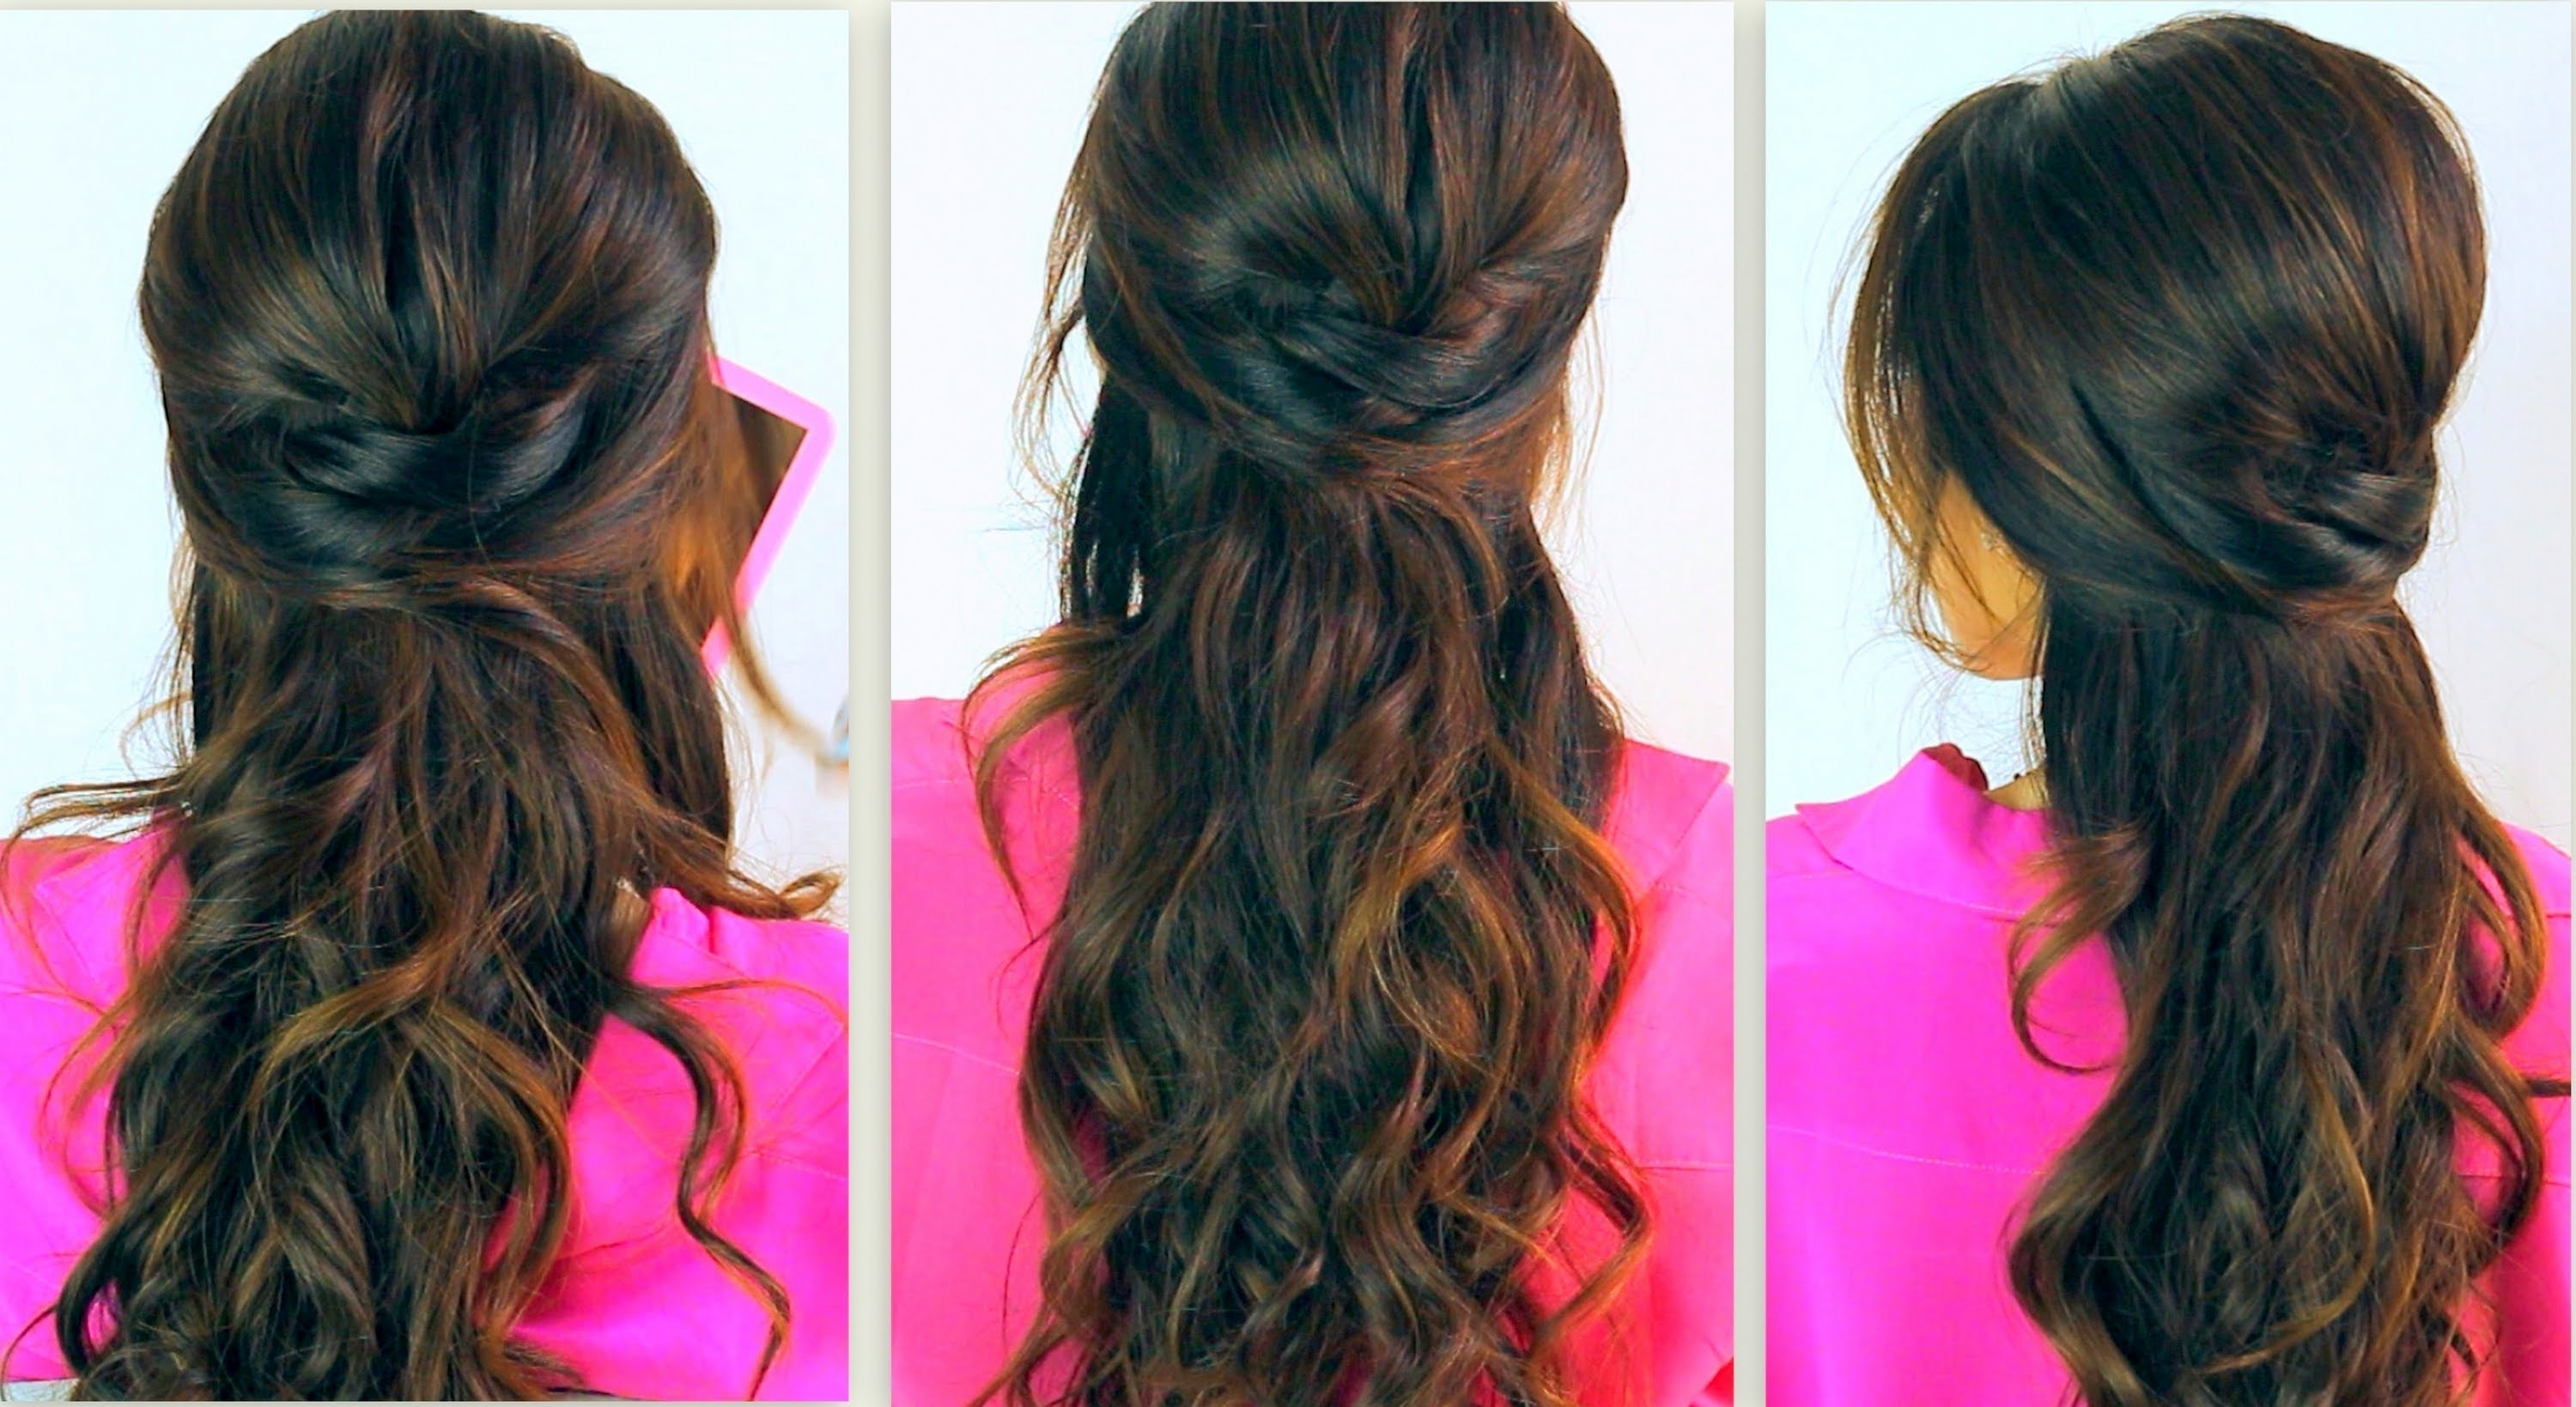 Everyday Prom Curly Half Up Regarding Most Popular Hair Half Up Half Down Wedding Hairstyles Long Curly (View 2 of 15)